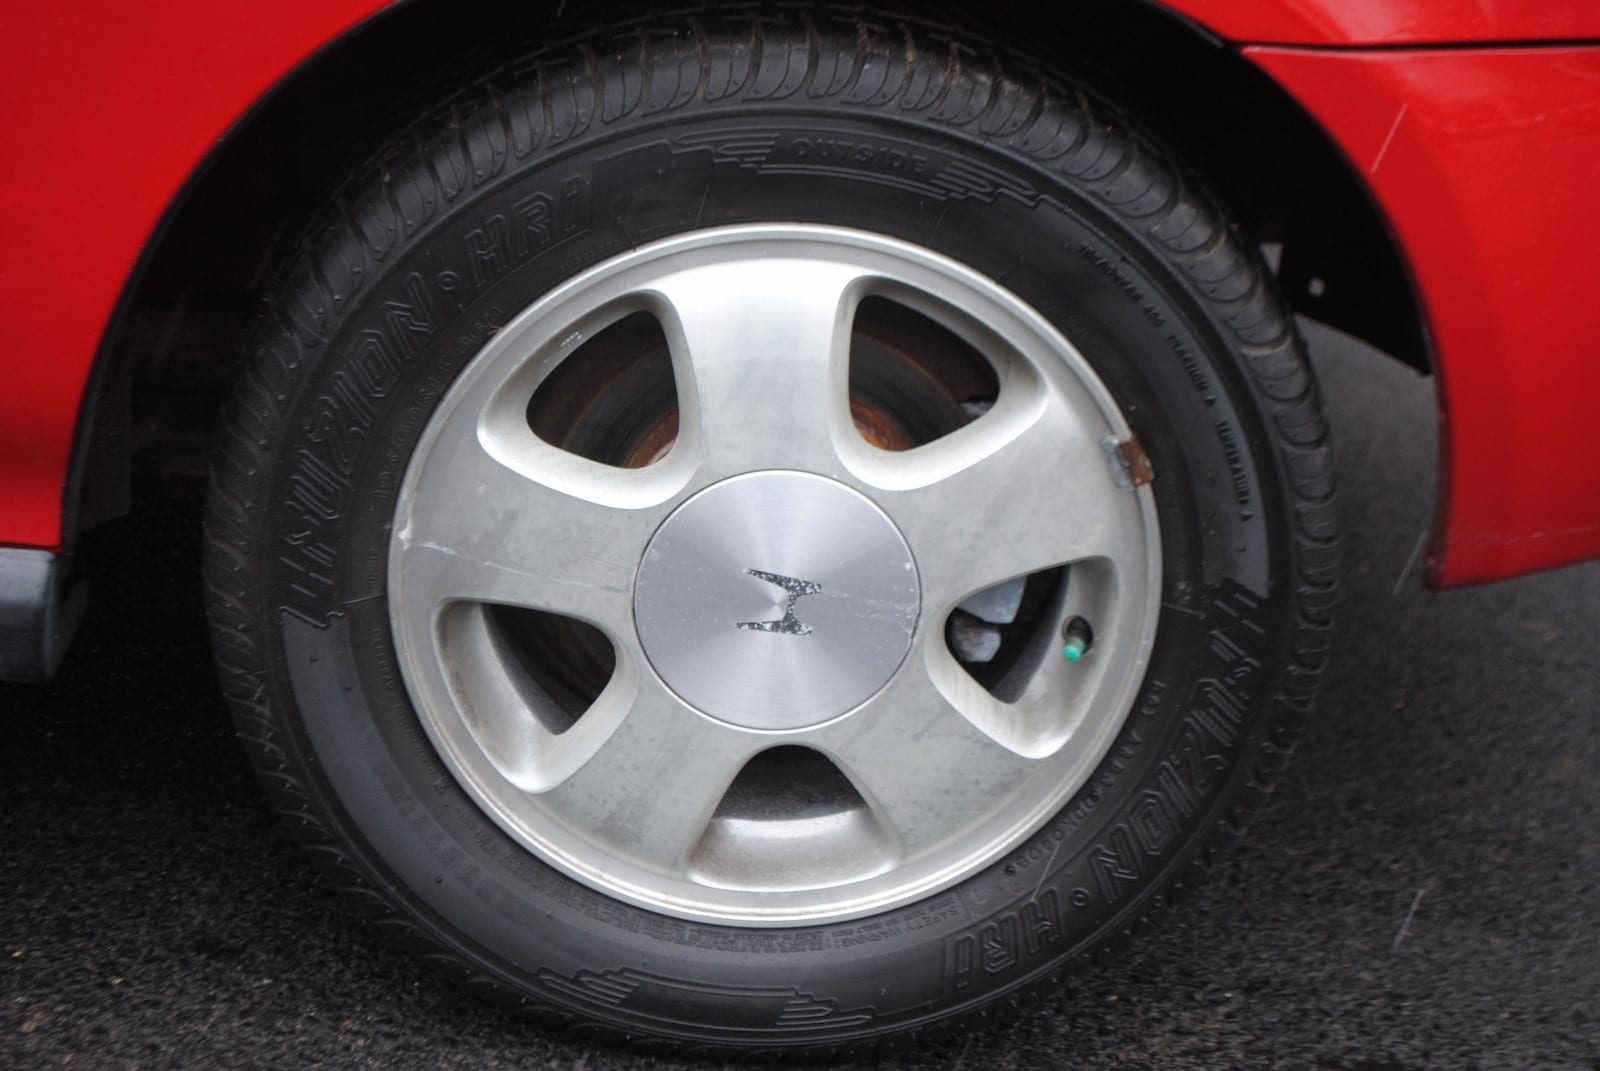 Del Sol Rims Maintenance Schedules User Manuals List Trailer Connectors Harnesses Wiring Universal O39reilly Array Used 1994 Honda For Sale West Milford Nj Rh Ramseycorp Com